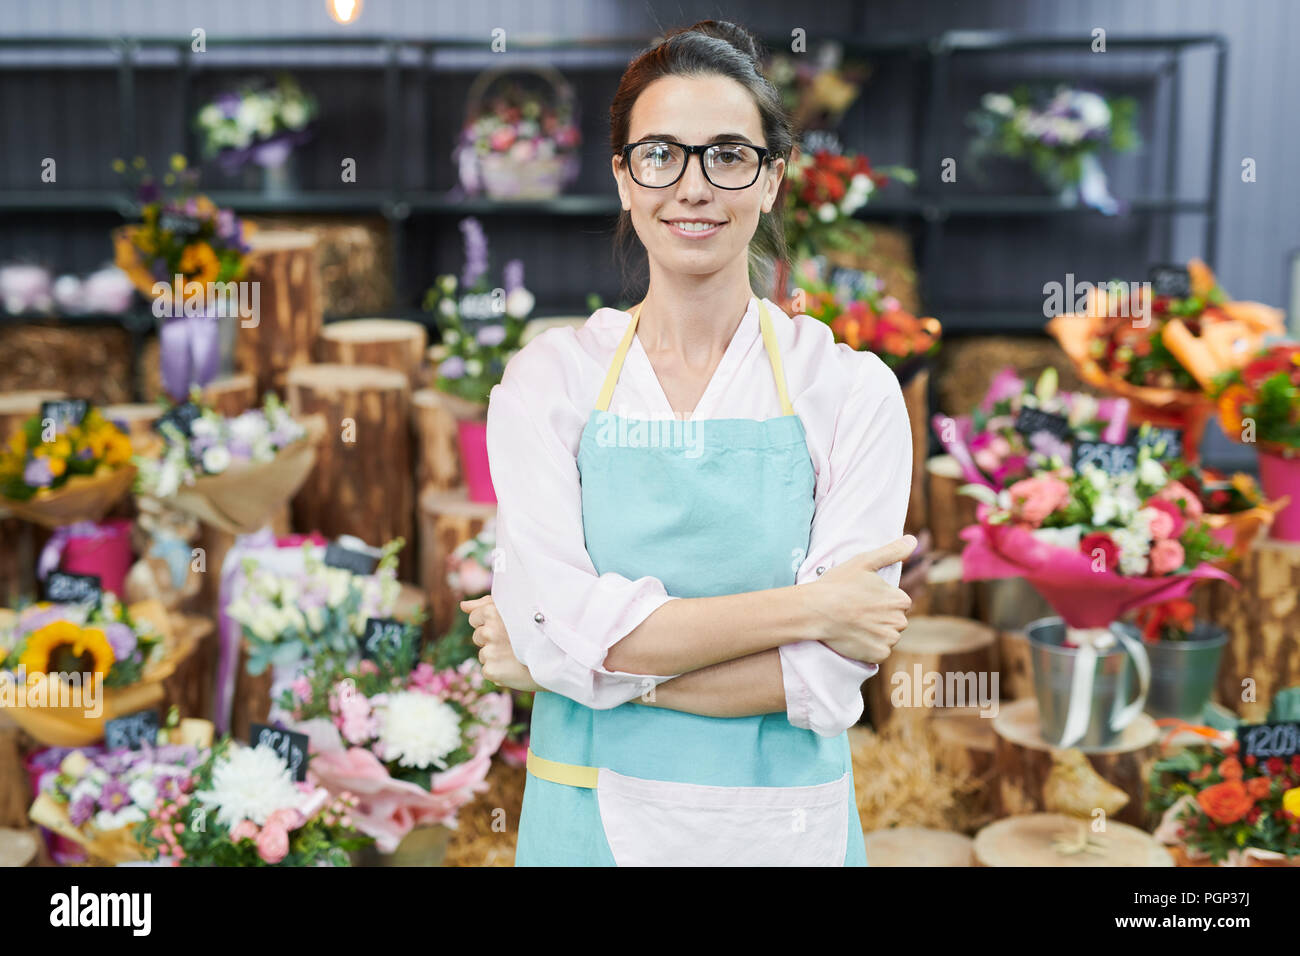 Portrait of female floser shop owner posing confidently and looking at camera Stock Photo